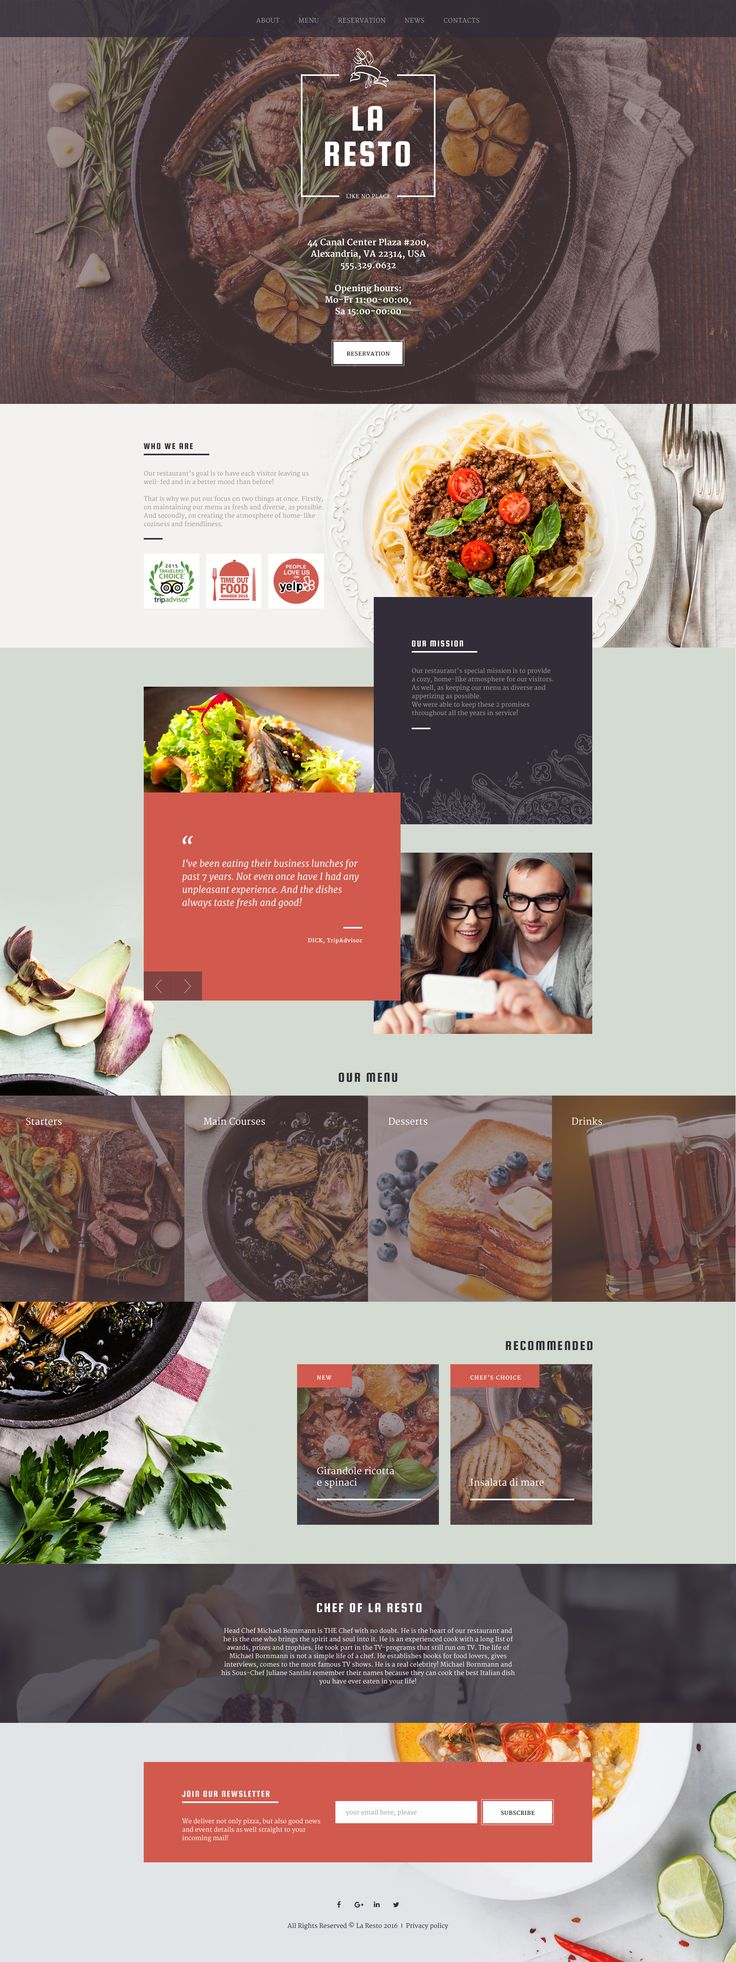 Cafe and Restaurant Responsive Website Template http://www.templatemonster.com/website-templates/cafe-and-restaurant-responsive-website-template-58360.html